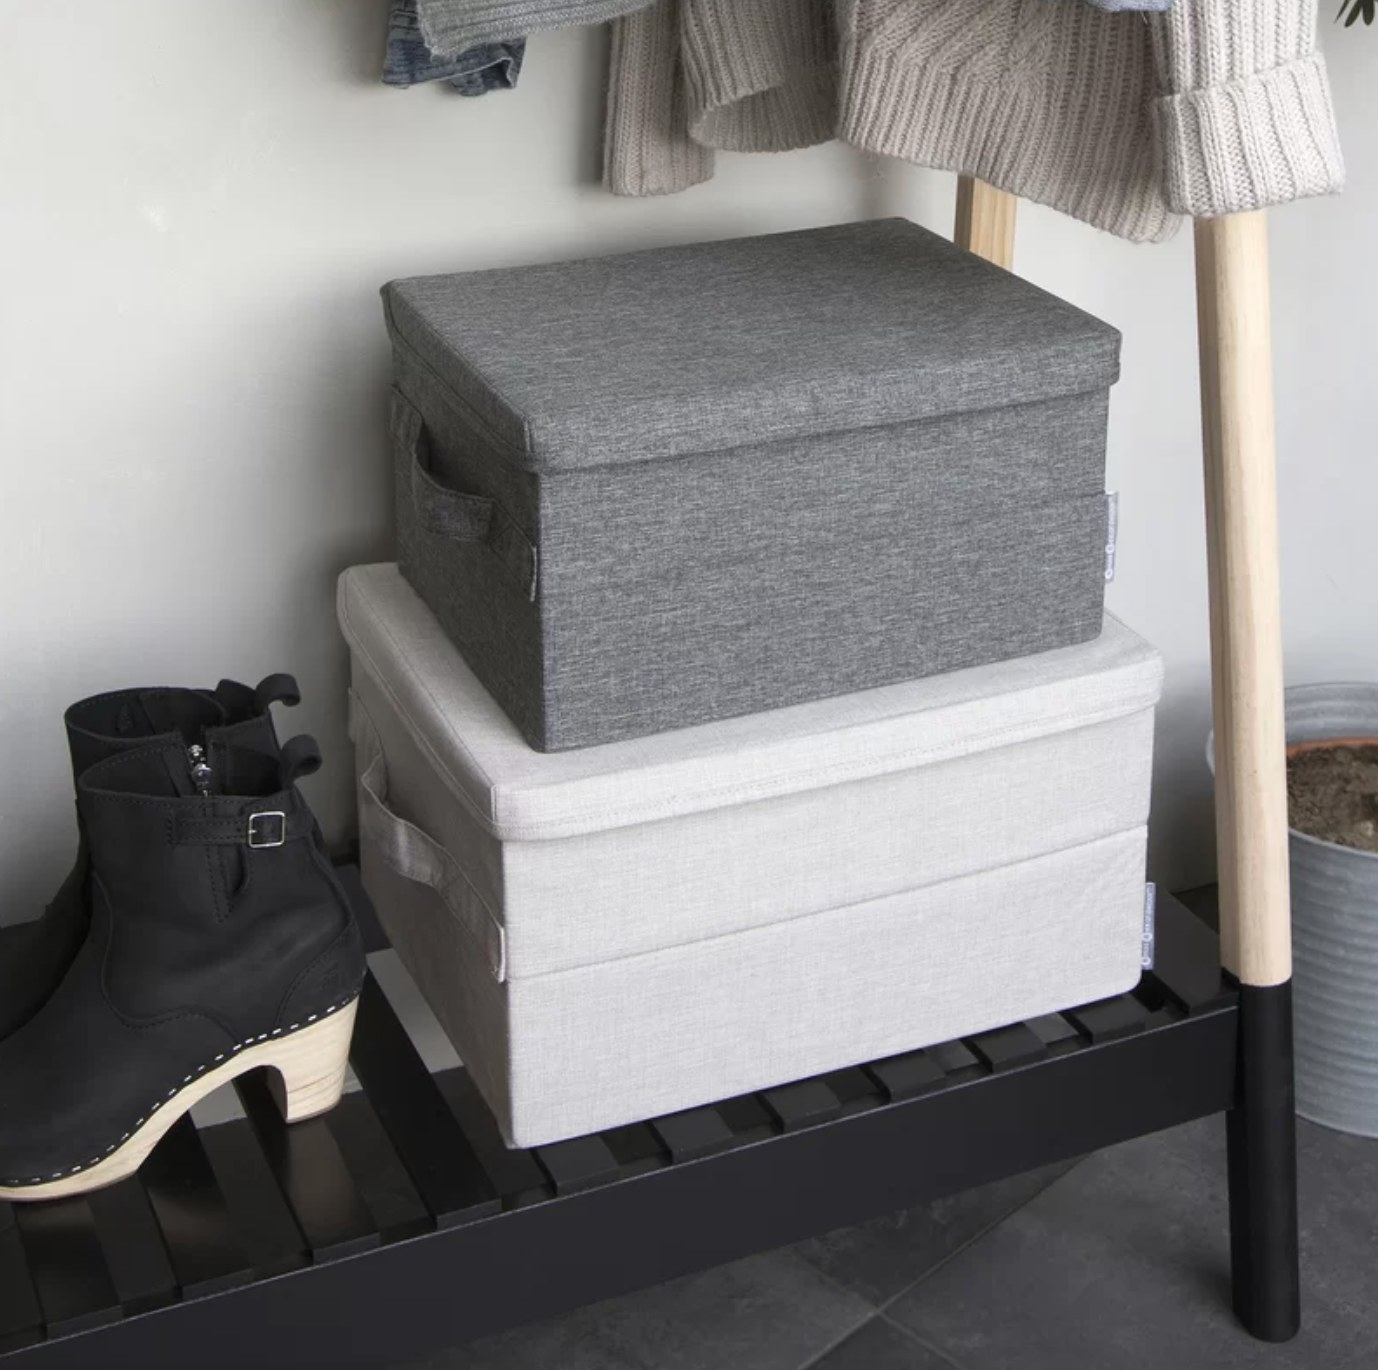 The storage boxes in light and dark gray on a rack in the closet